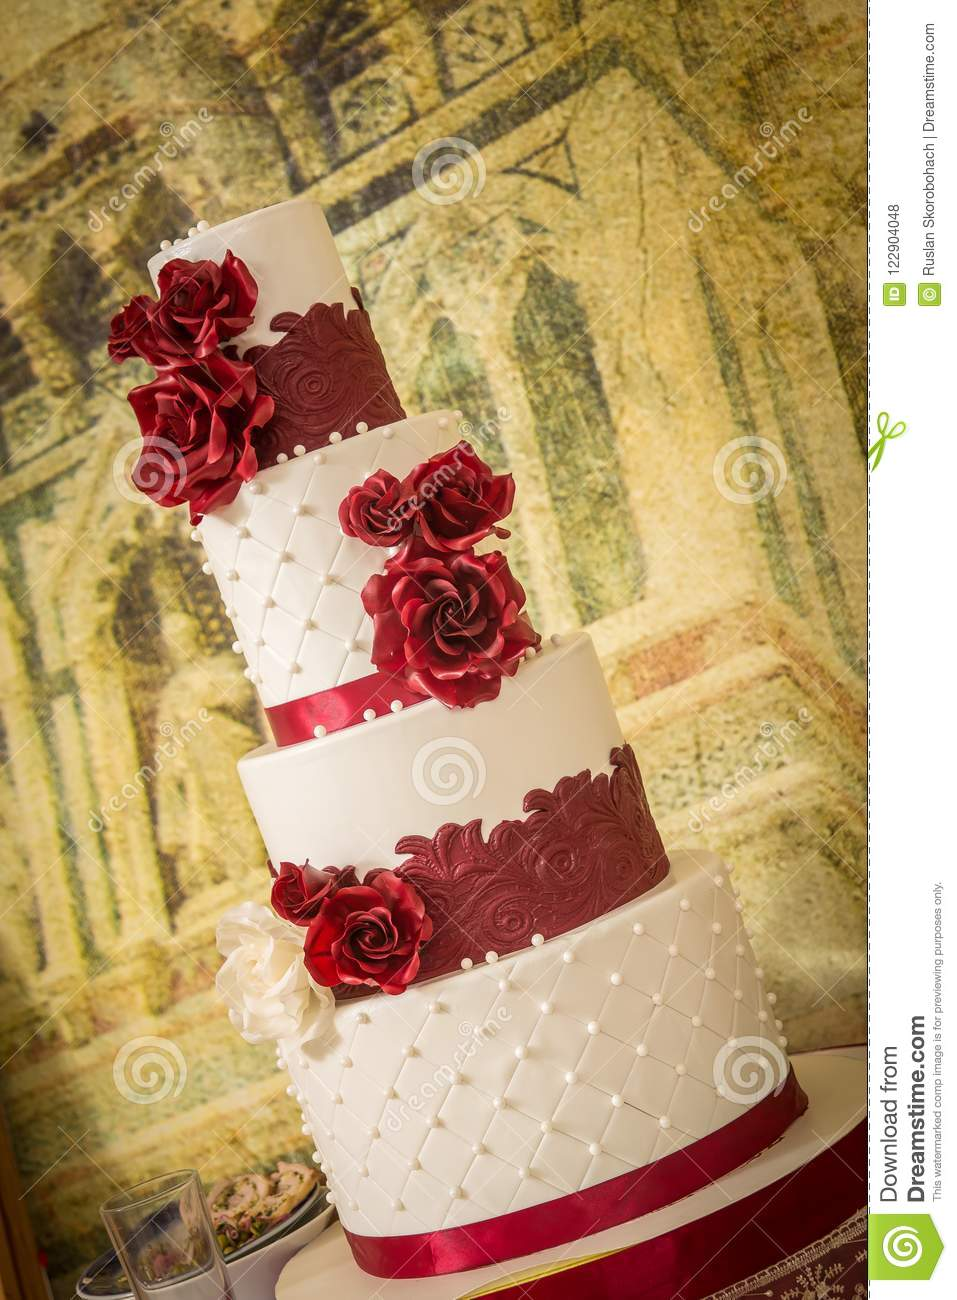 Red And White Wedding.Beautiful Red And White Wedding Cake Stock Photo Image Of Marriage